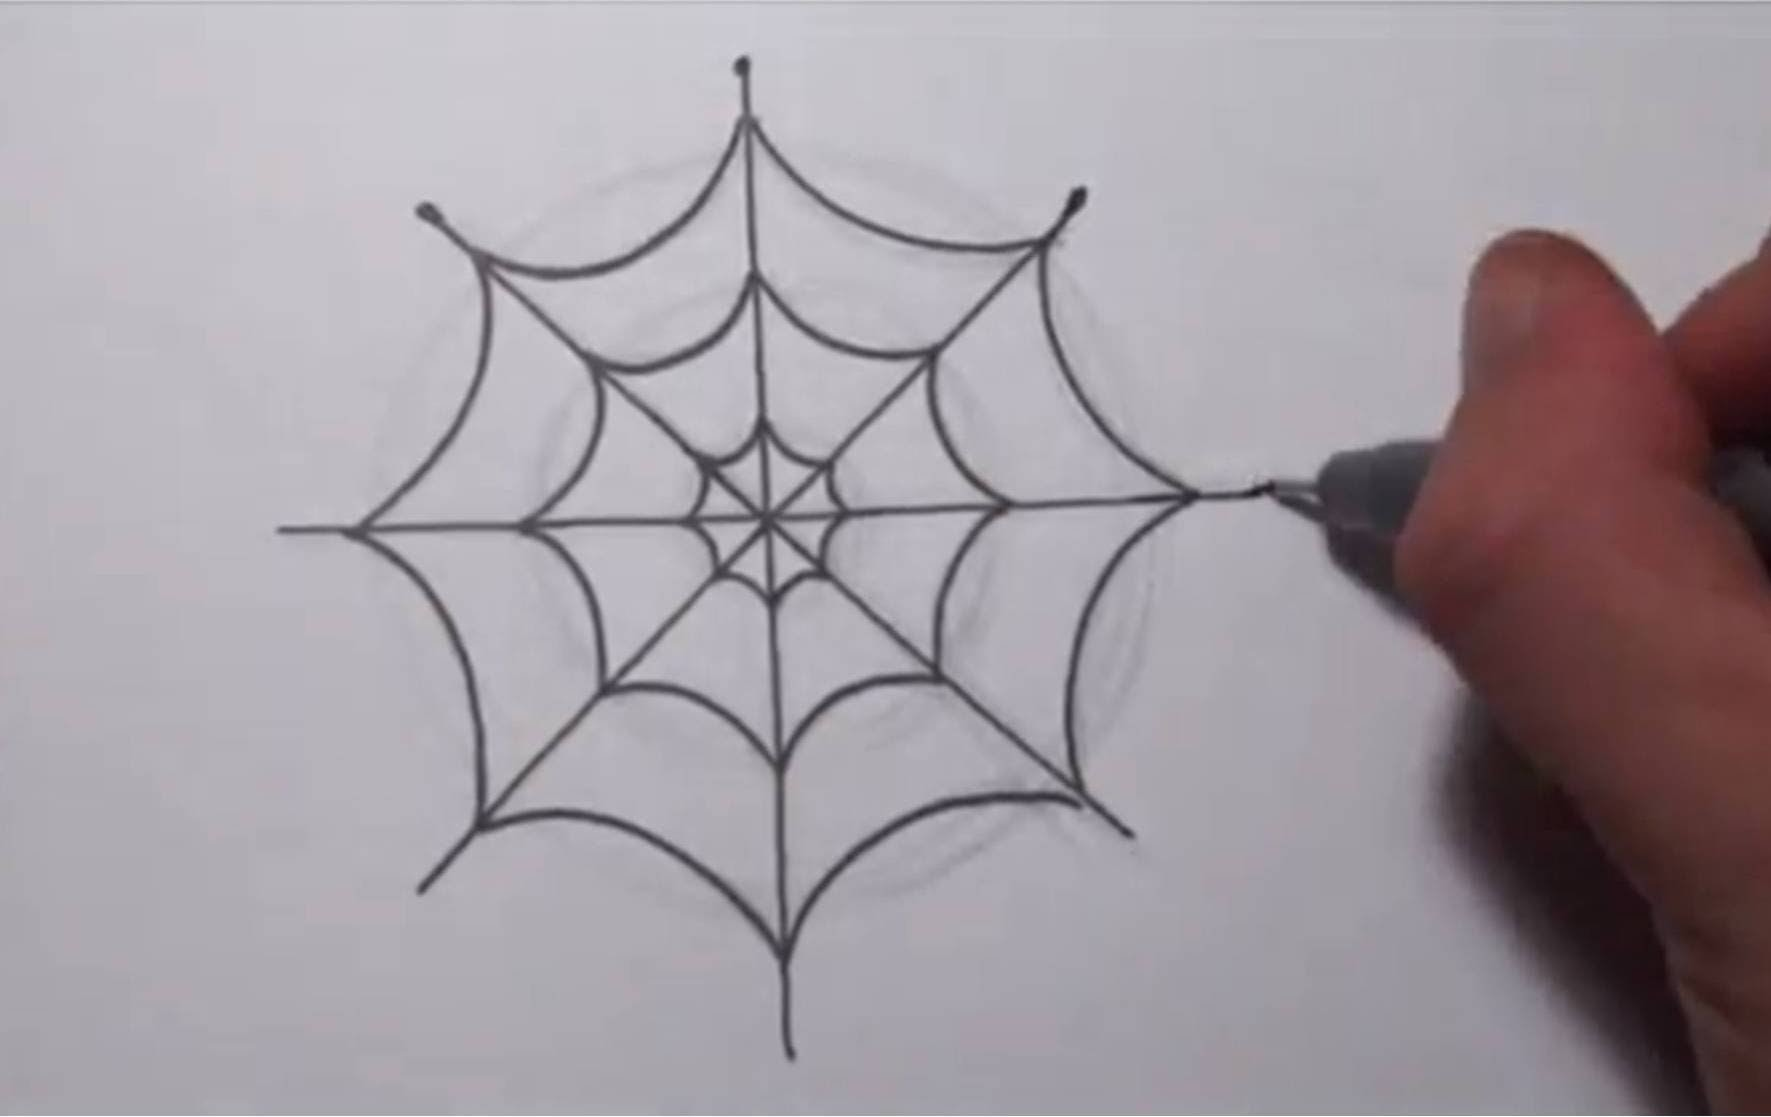 How To Draw a Simple Spider Web